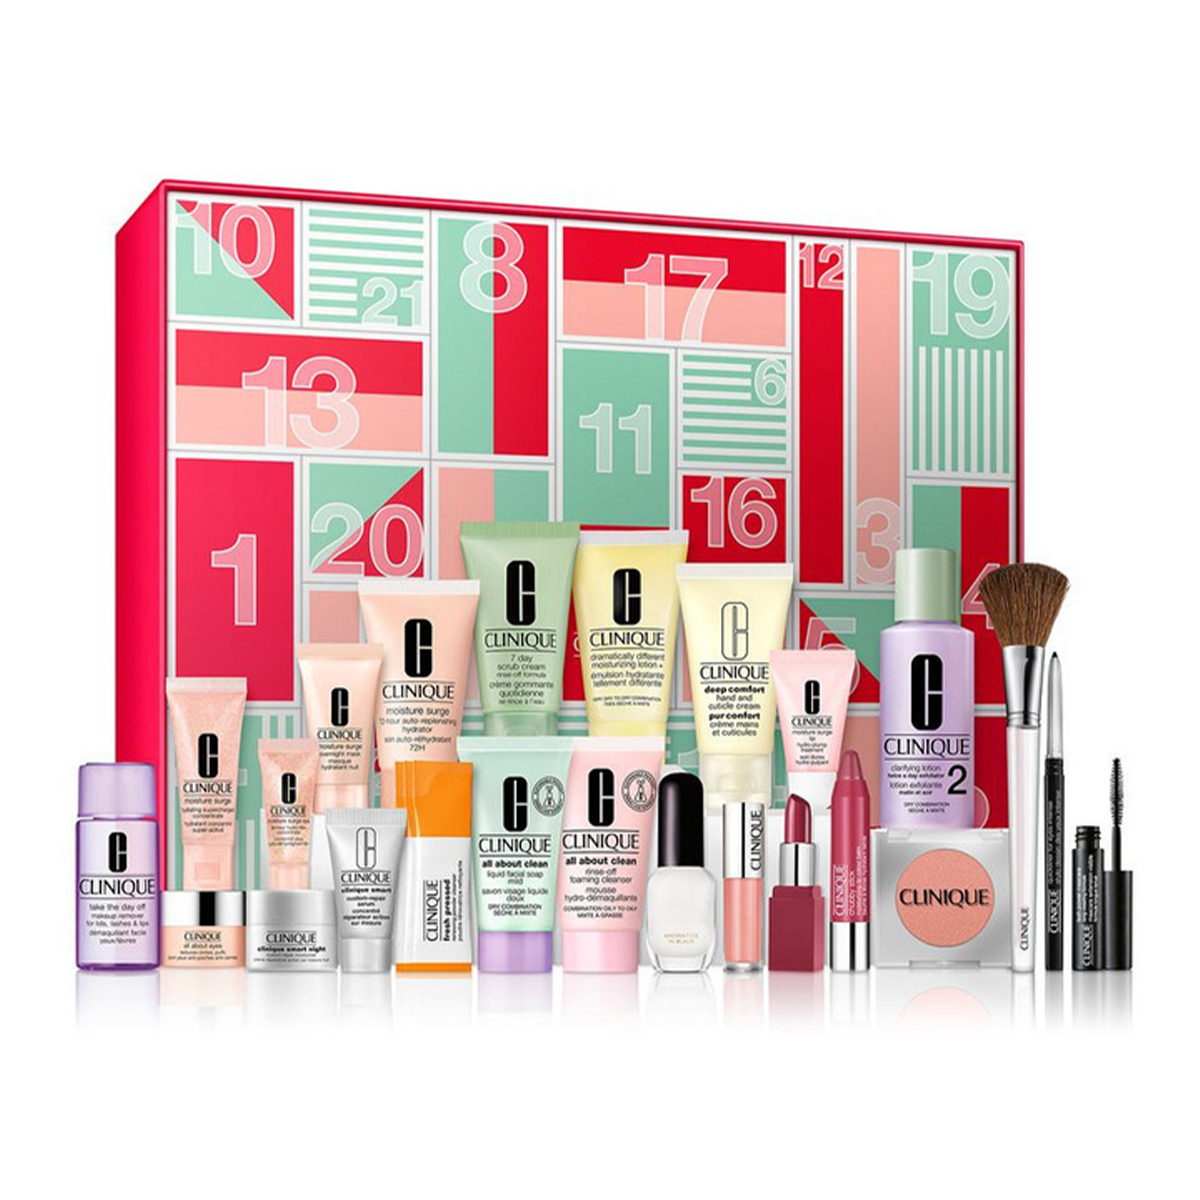 a red and pink box covered in numbers with clinique samples in front